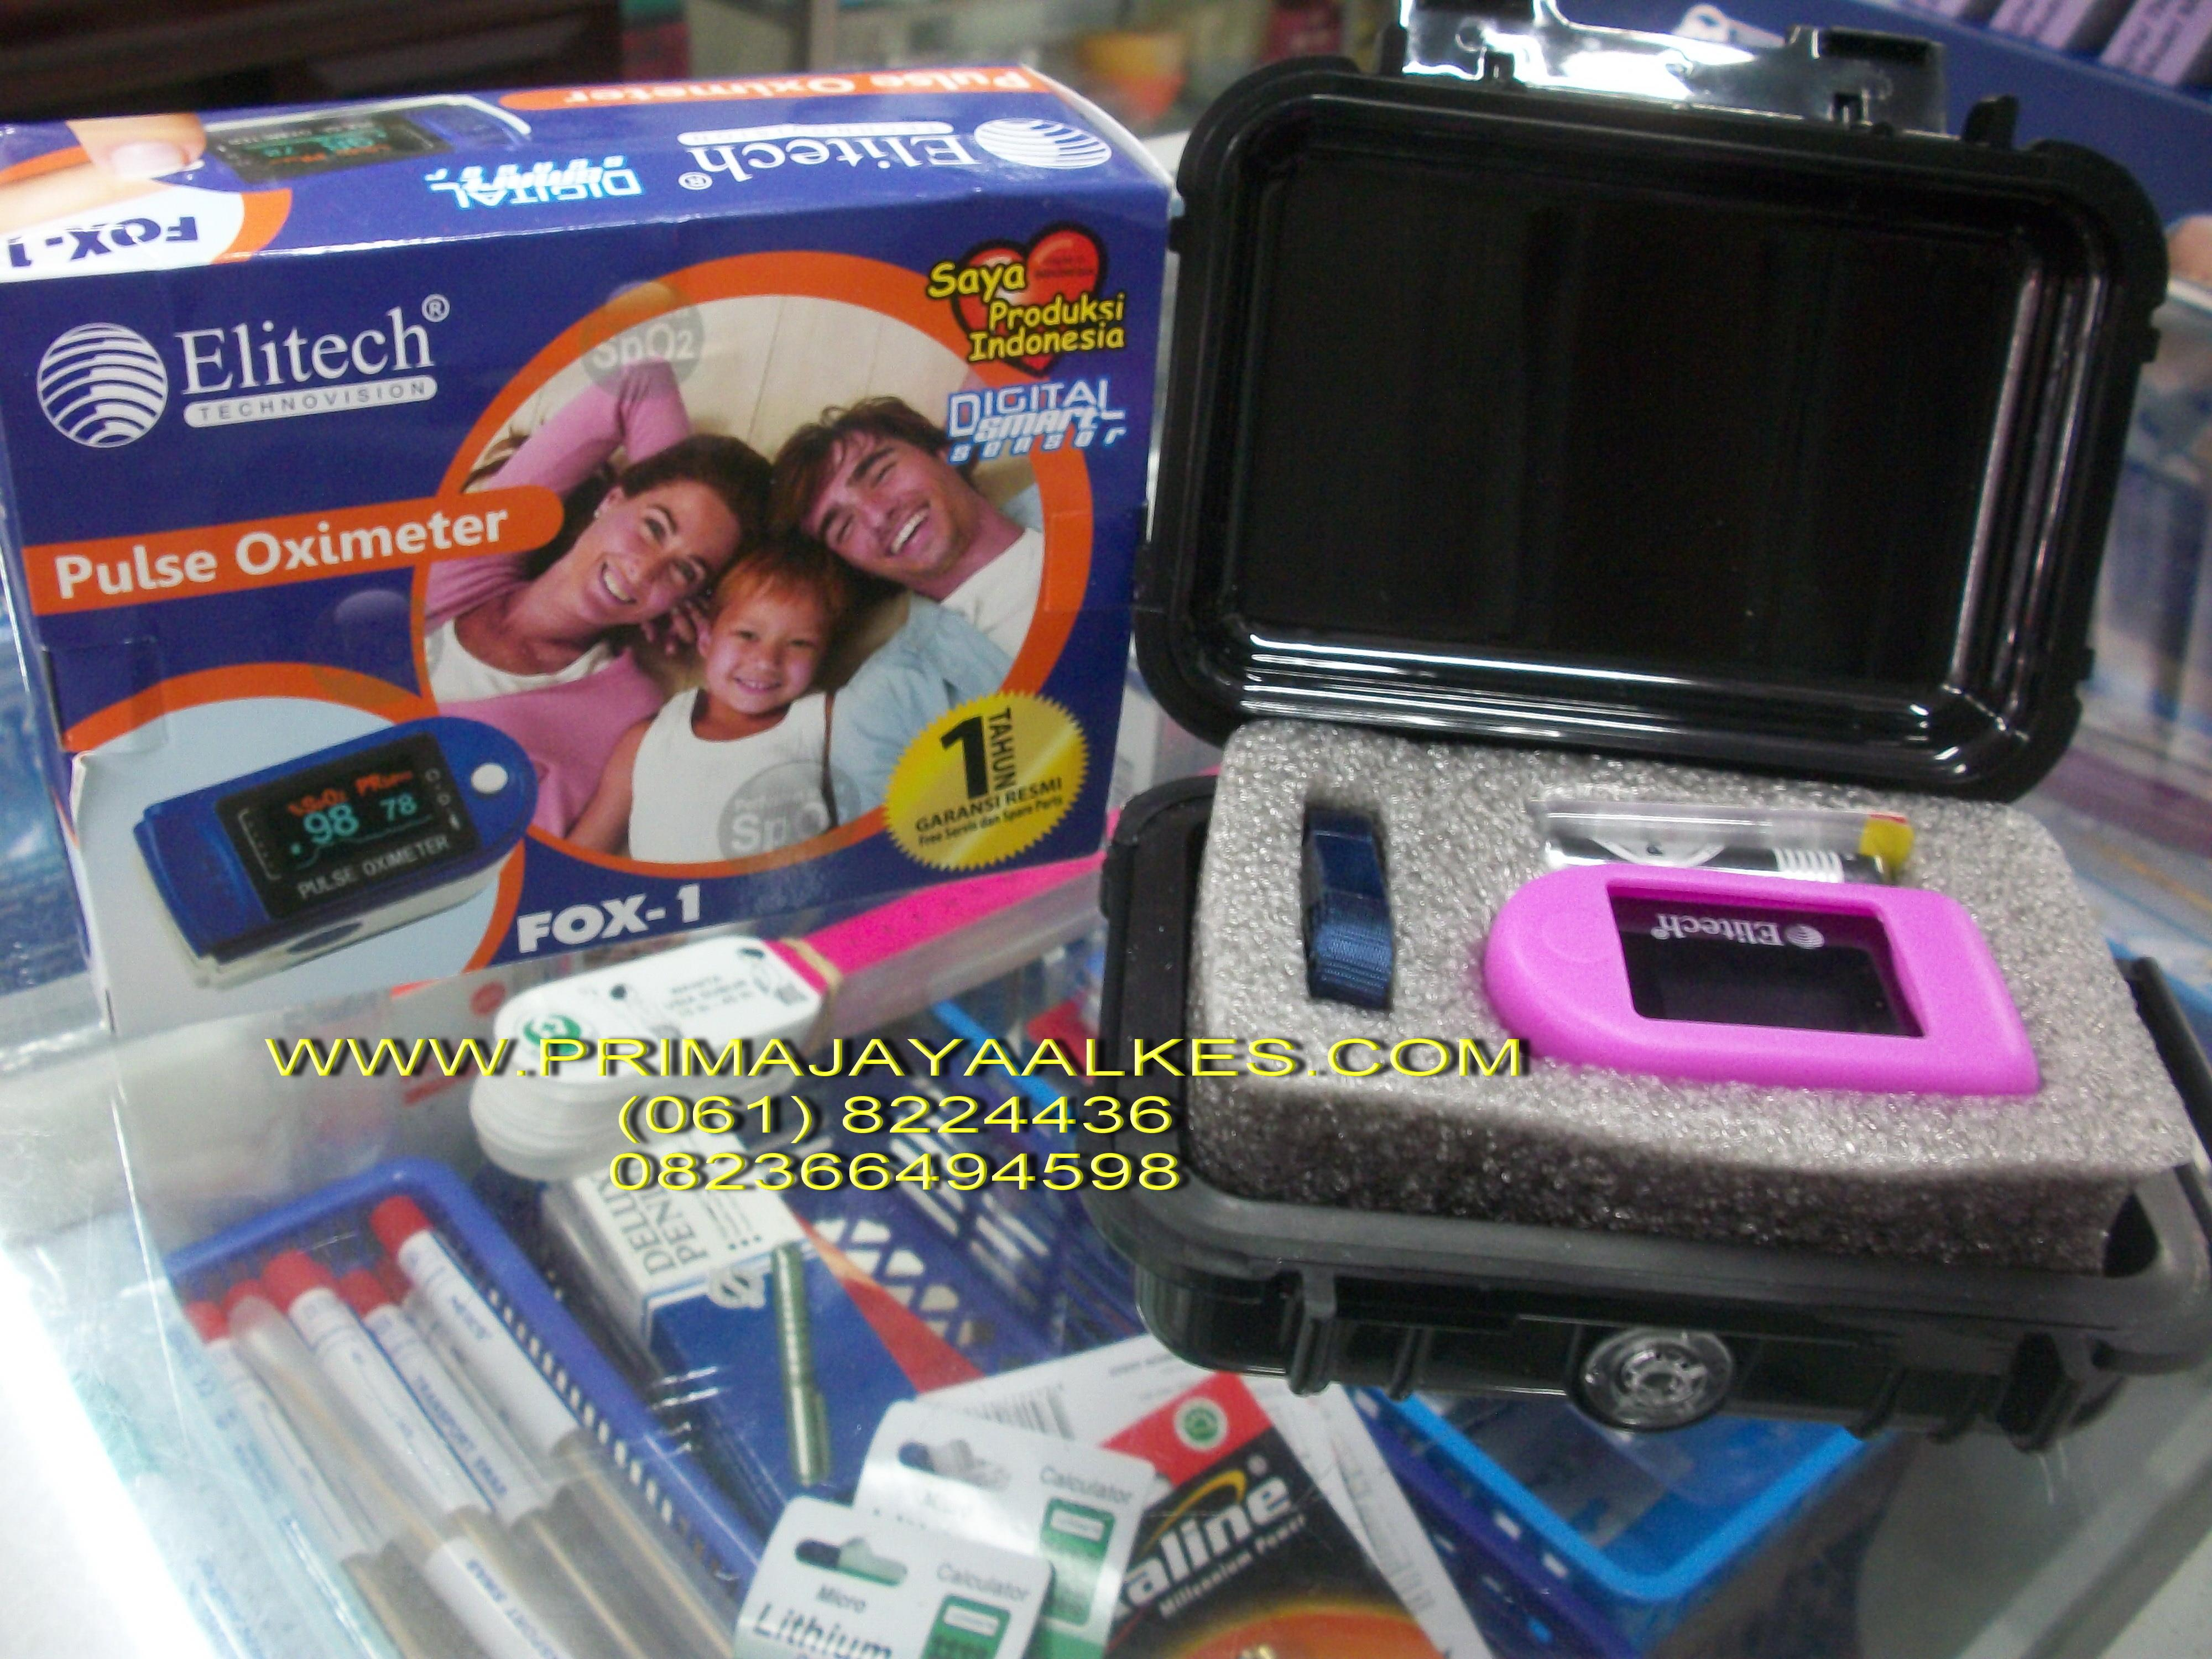 Sell Puse Oximetri From Indonesia By Ud Prima Jaya Alkescheap Price Oxymetri Elitech Fox 1